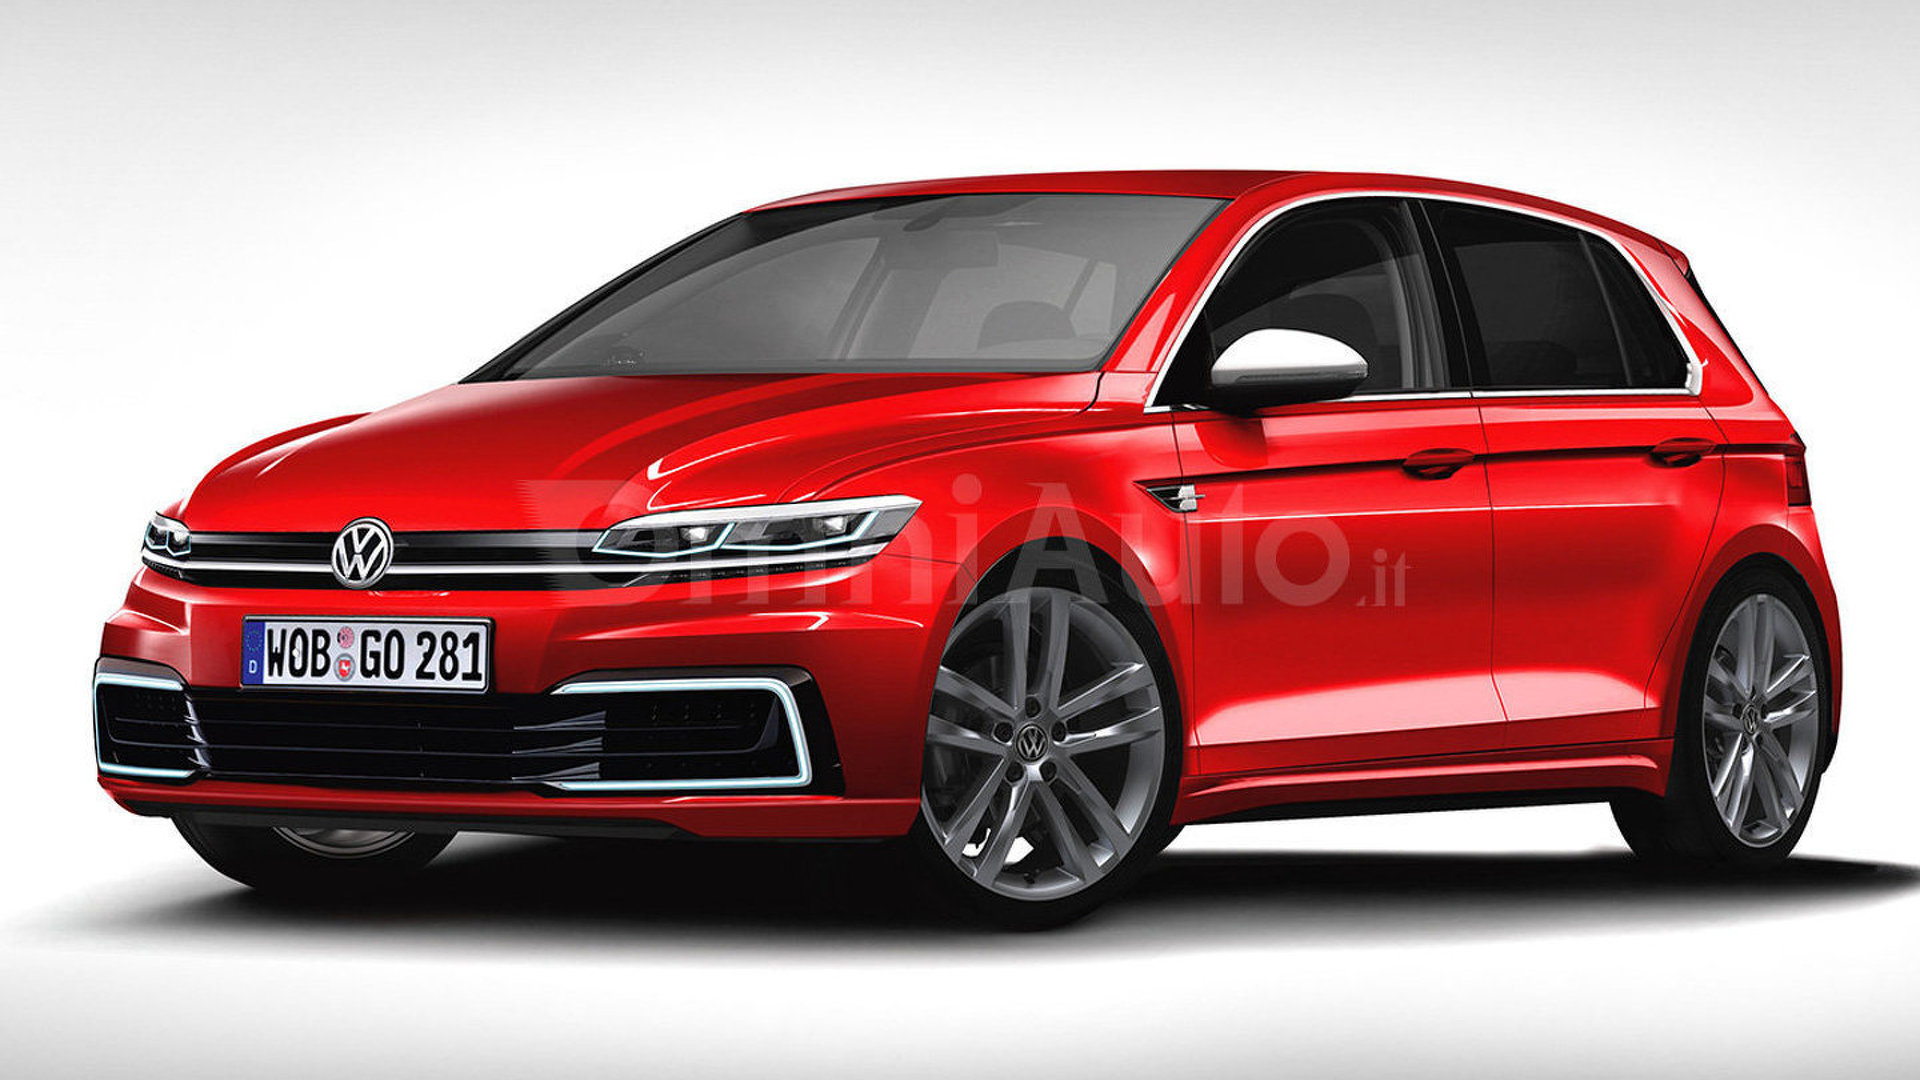 2017 vw golf rendering previews what to expect. Black Bedroom Furniture Sets. Home Design Ideas